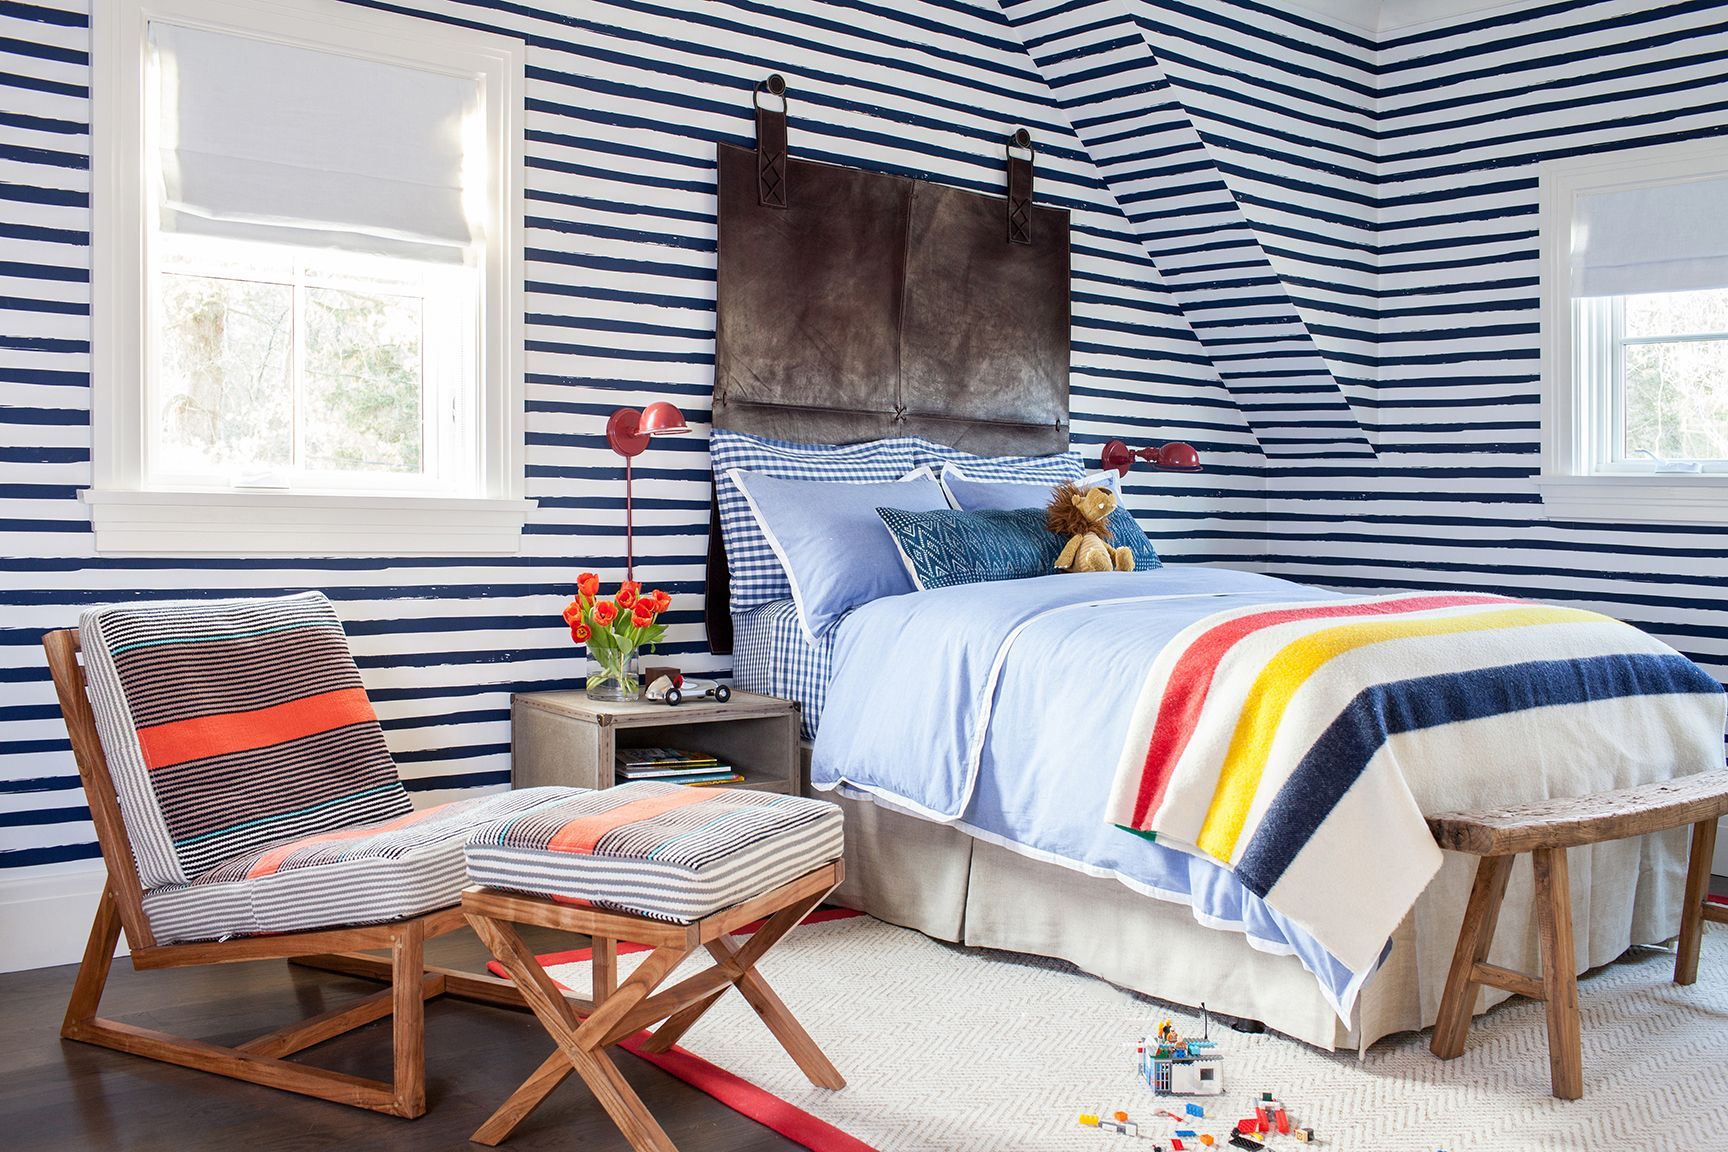 50 Kids Room Design Ideas - Cool Kids Bedroom Decor and Style